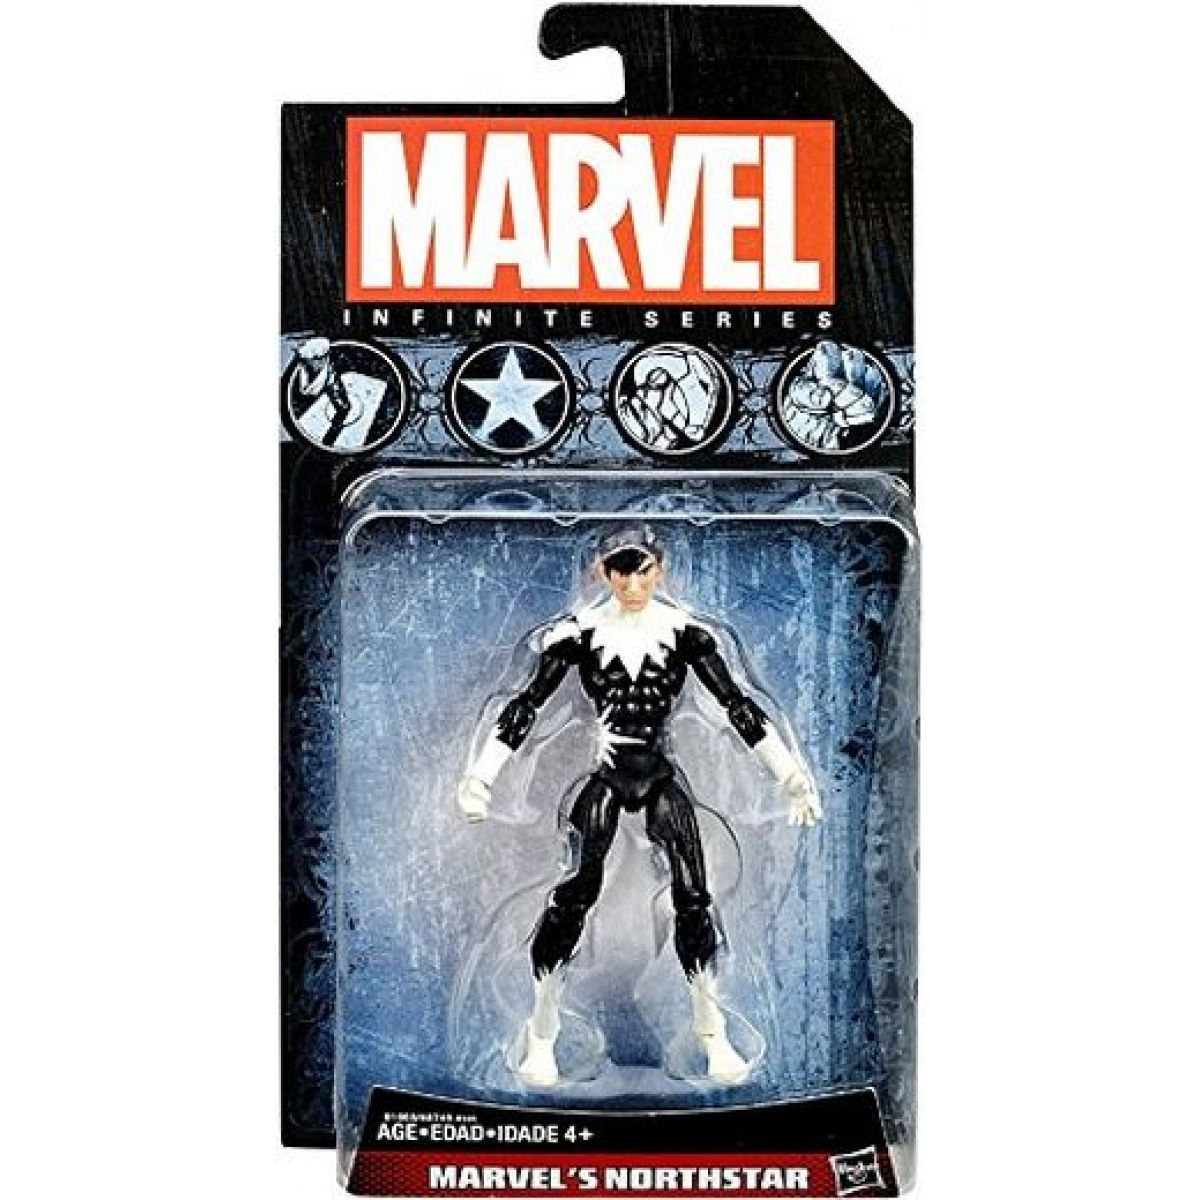 Hasbro Marvel Infinite series Marvel Northstar 10 cm